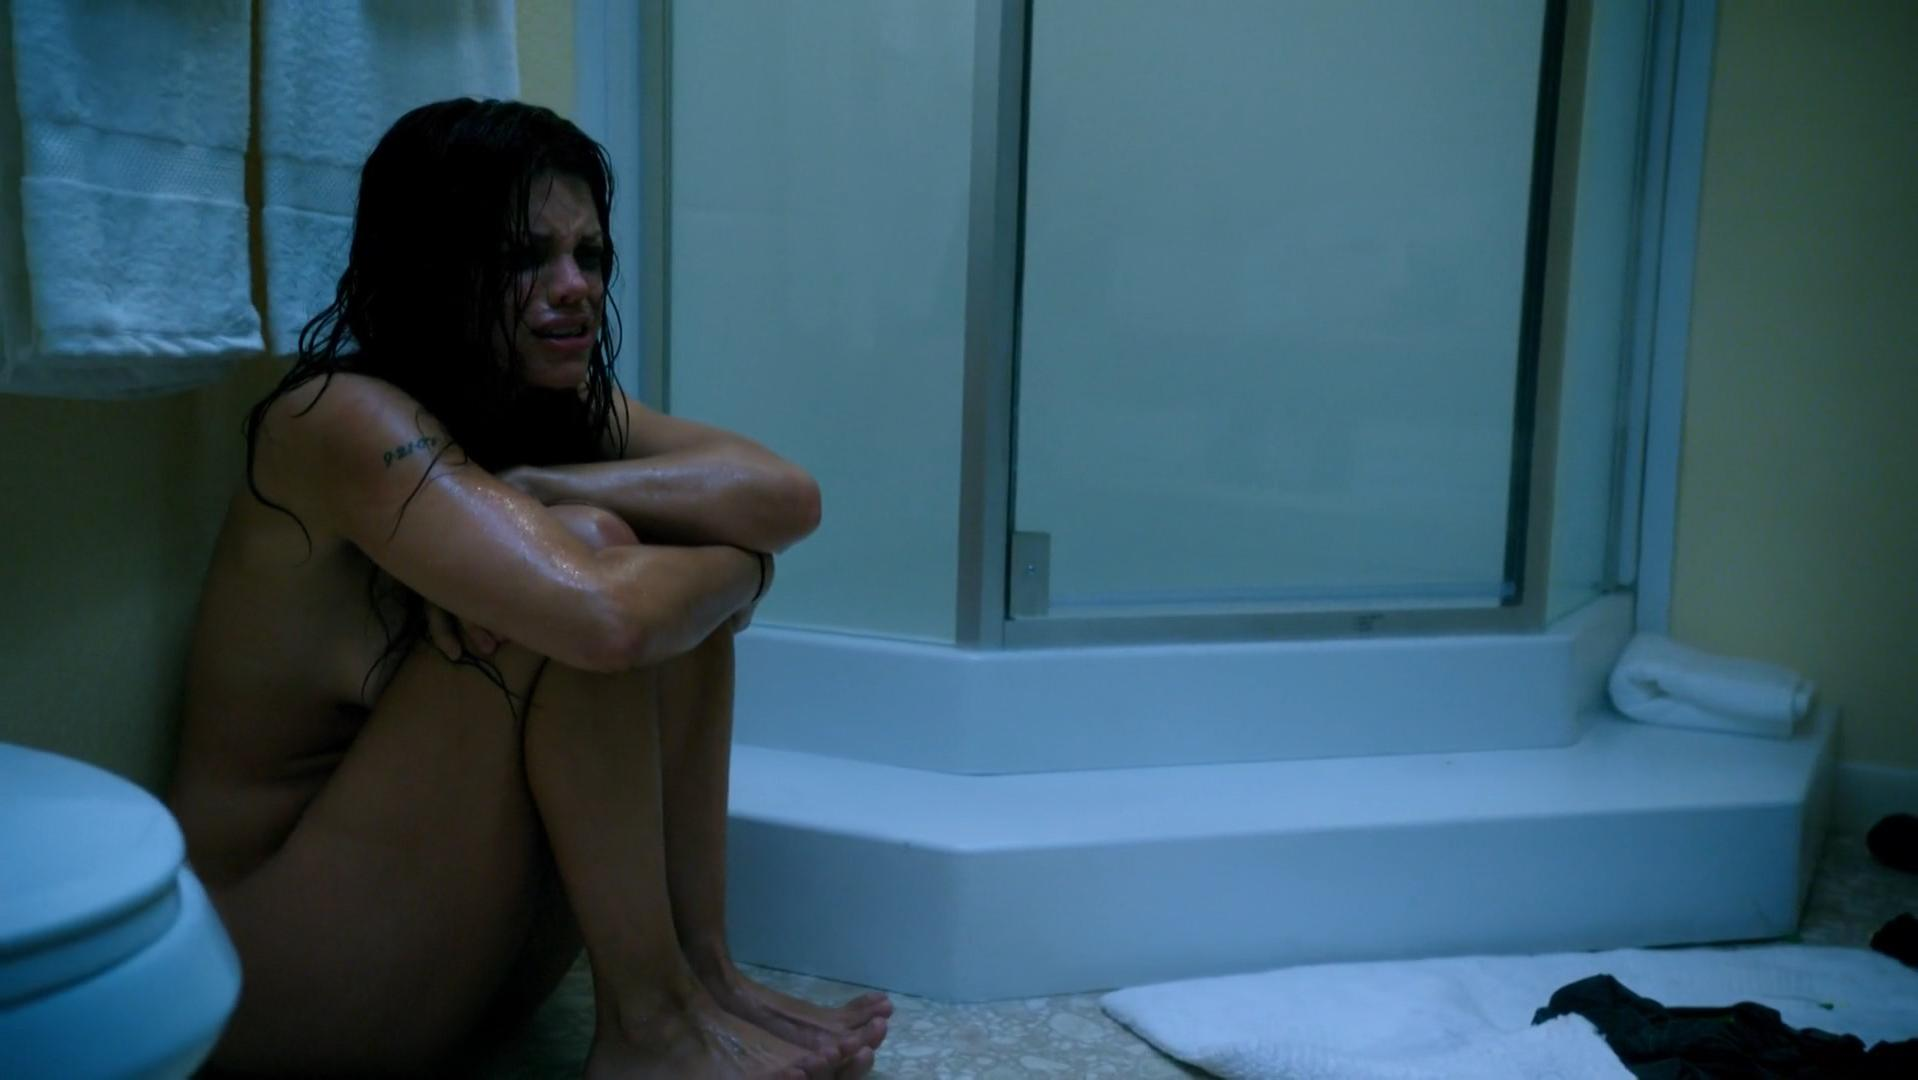 naked pictures of vanessa ferlito